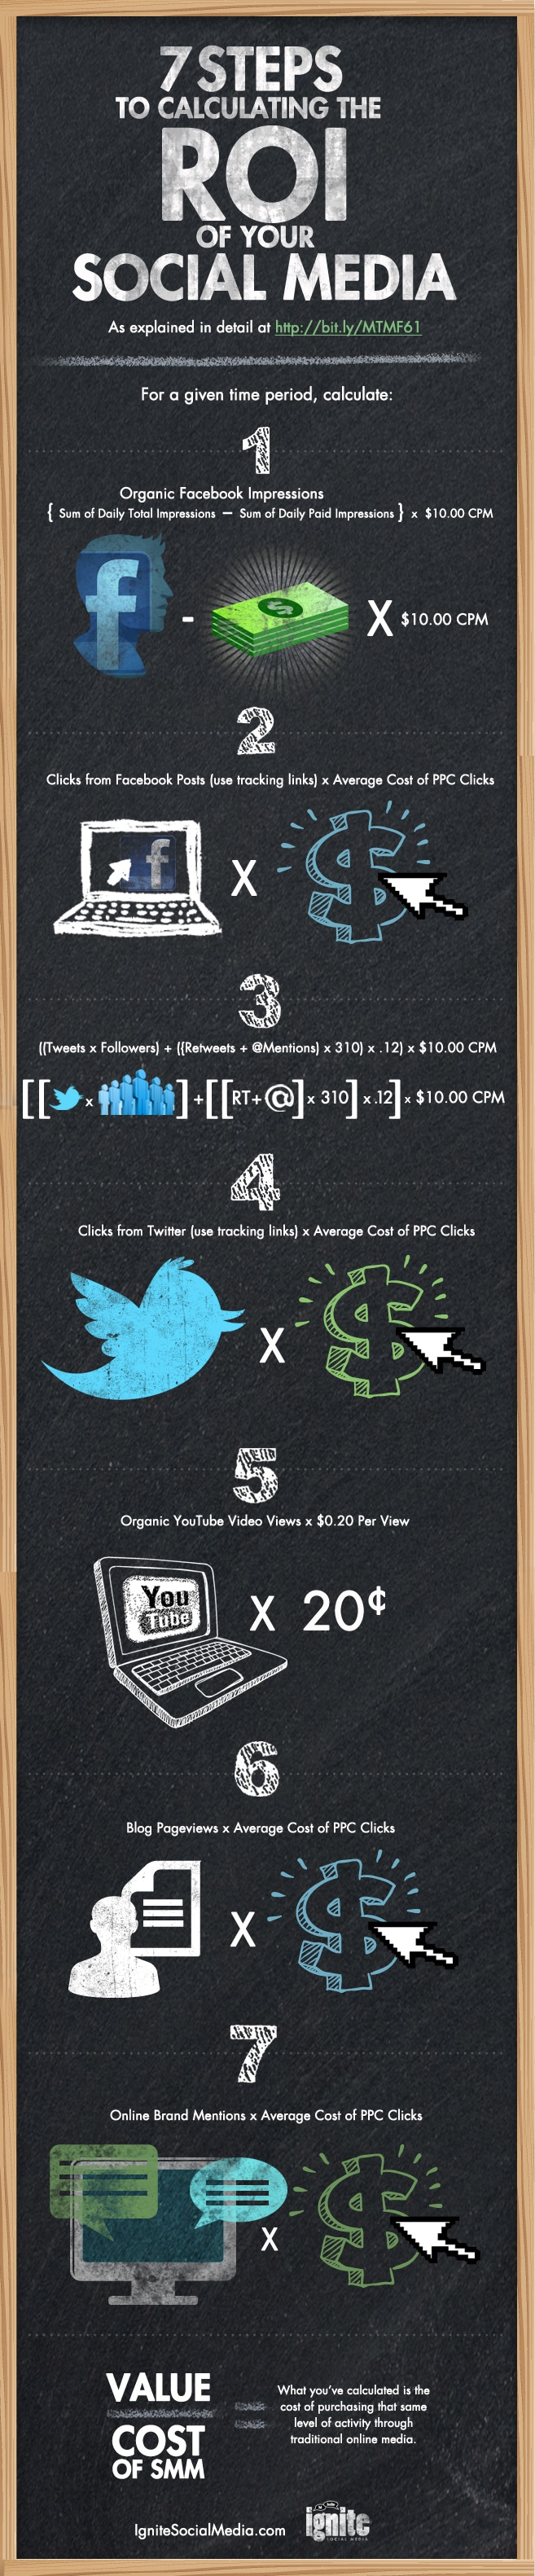 calculating-social-media-roi-infographic